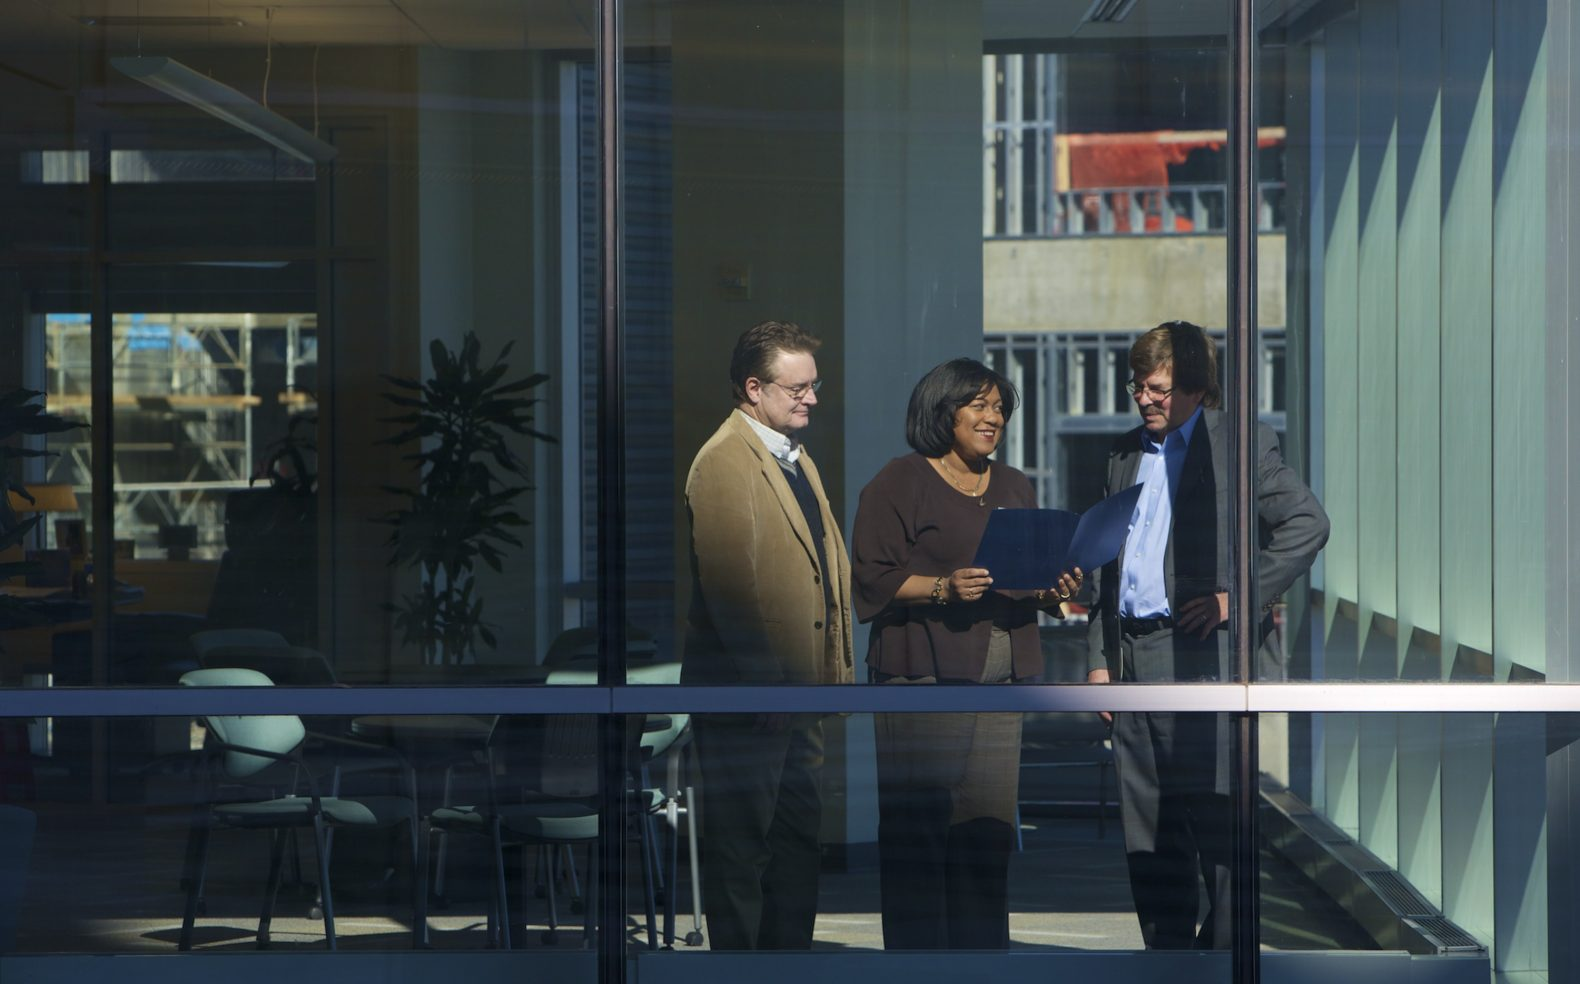 Professional photograph of three established businesspeople standing and reviewing a document by an office window